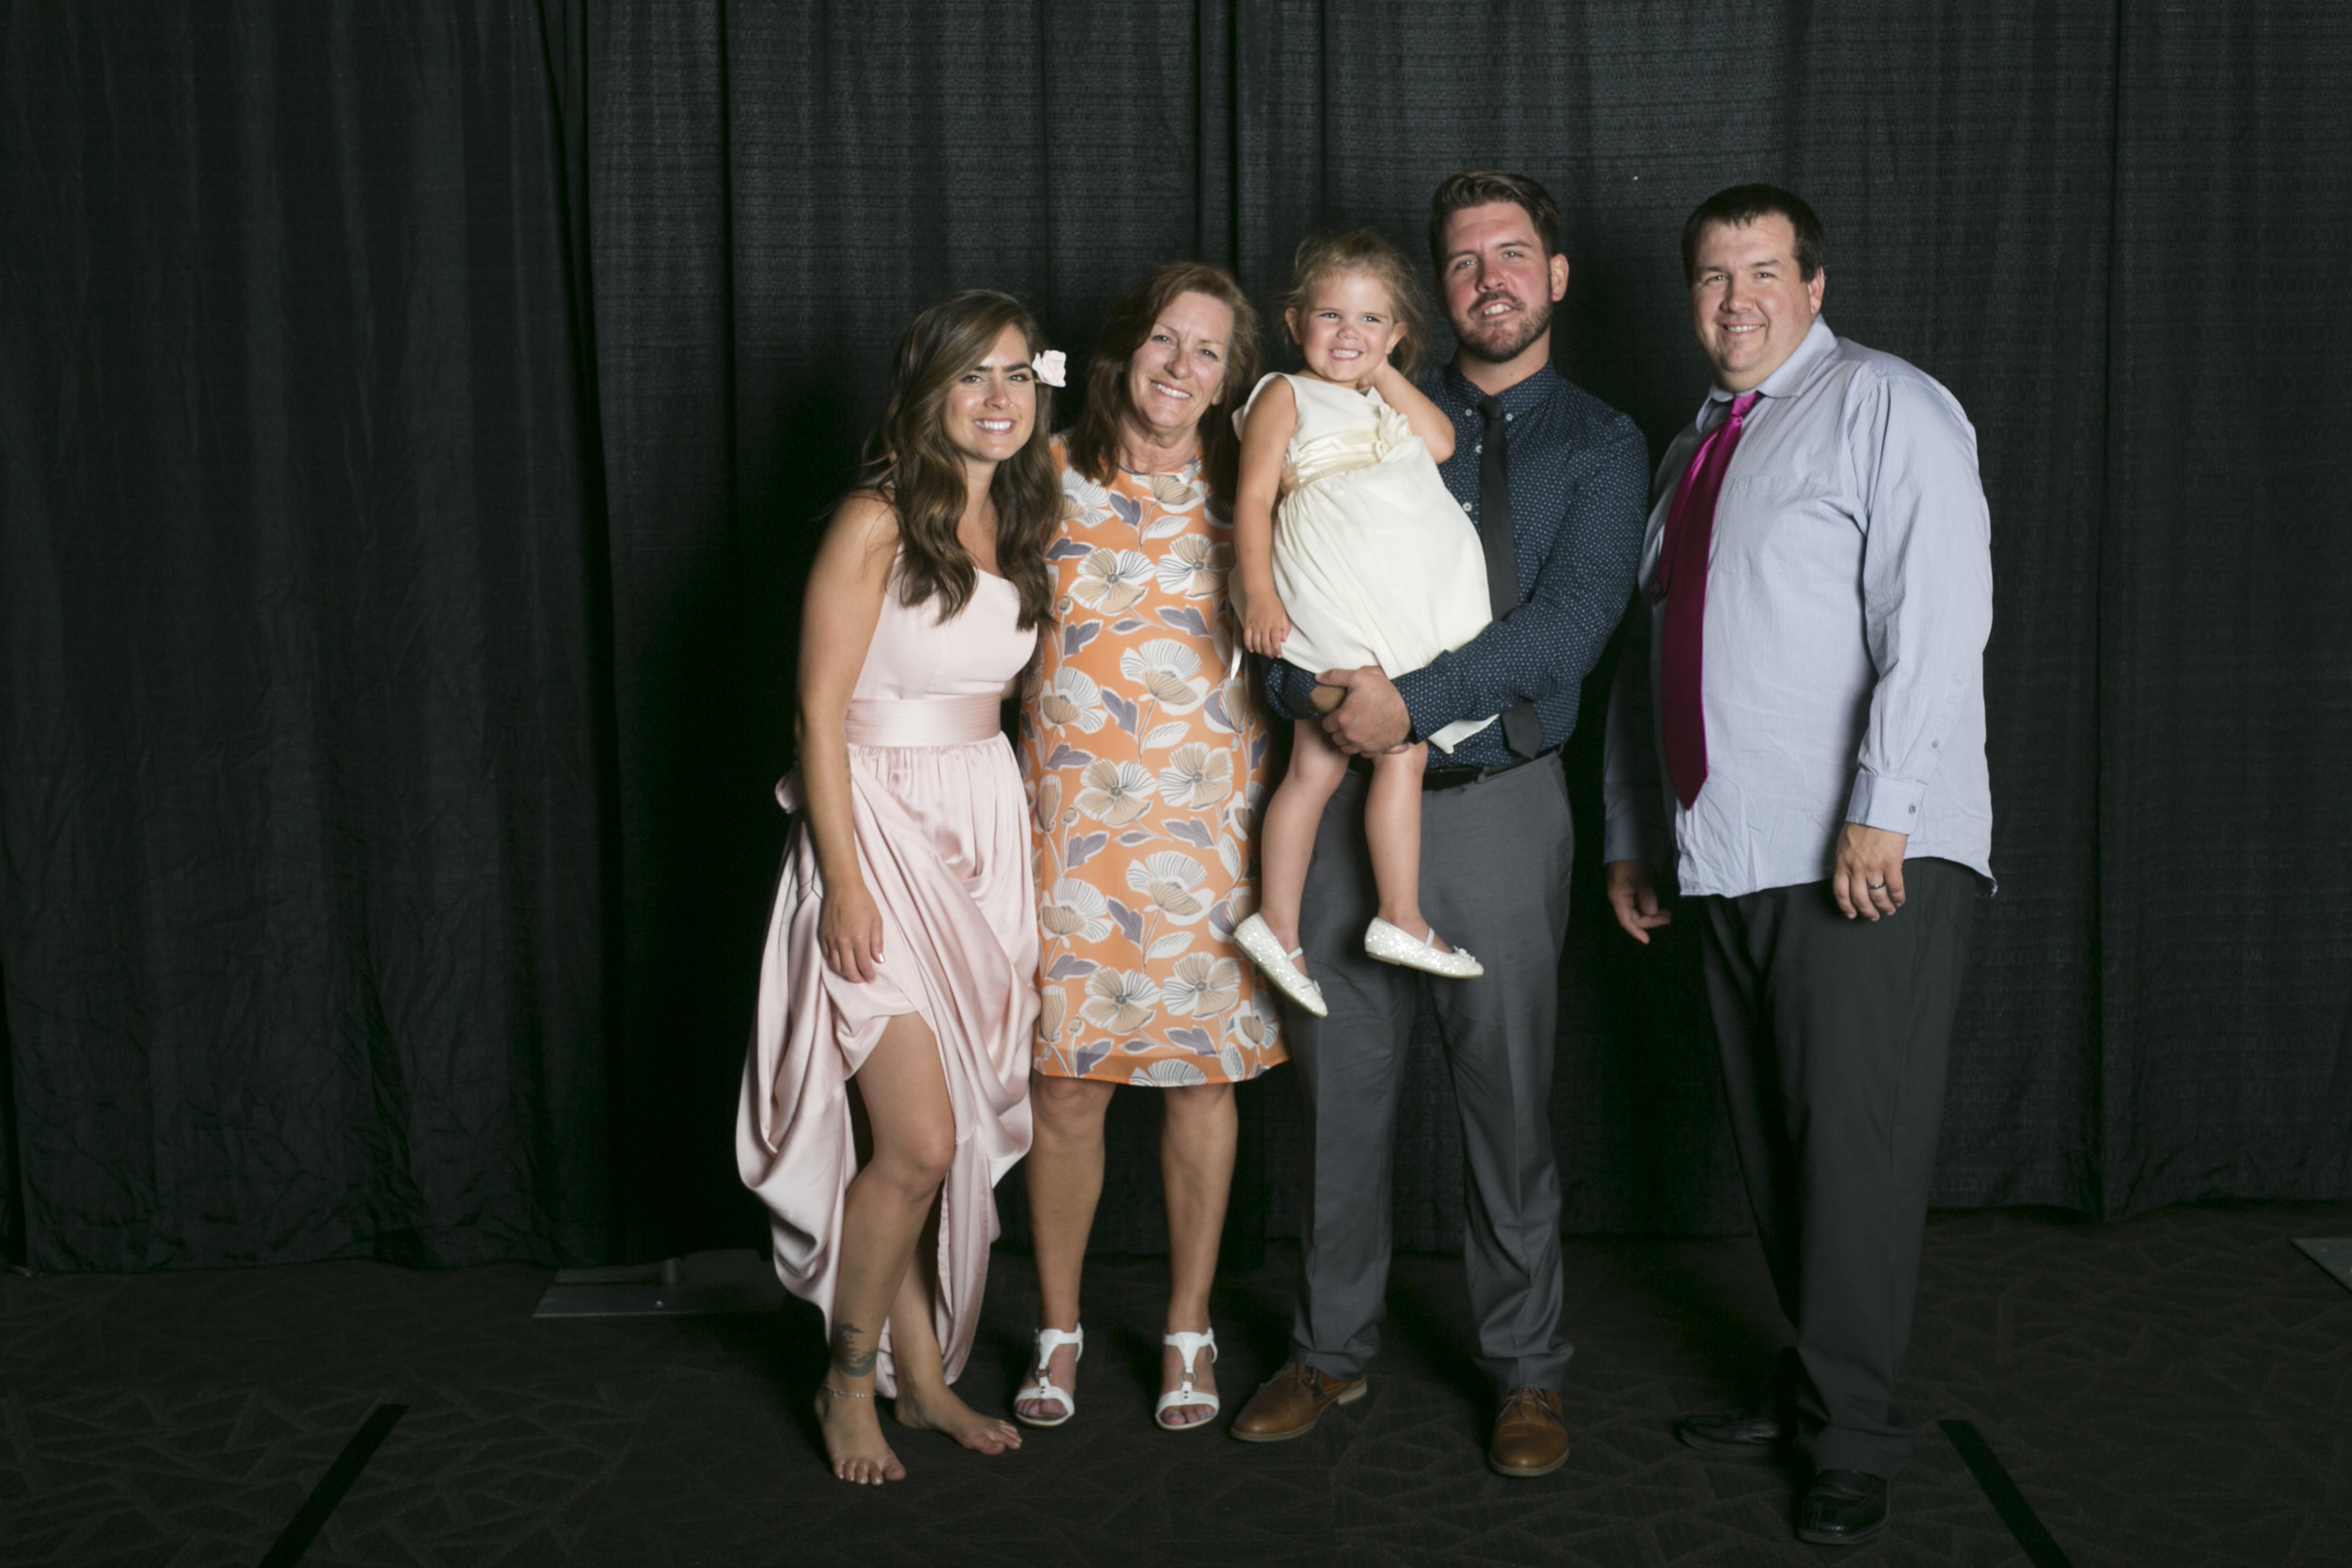 wedding photo booth-128.jpg